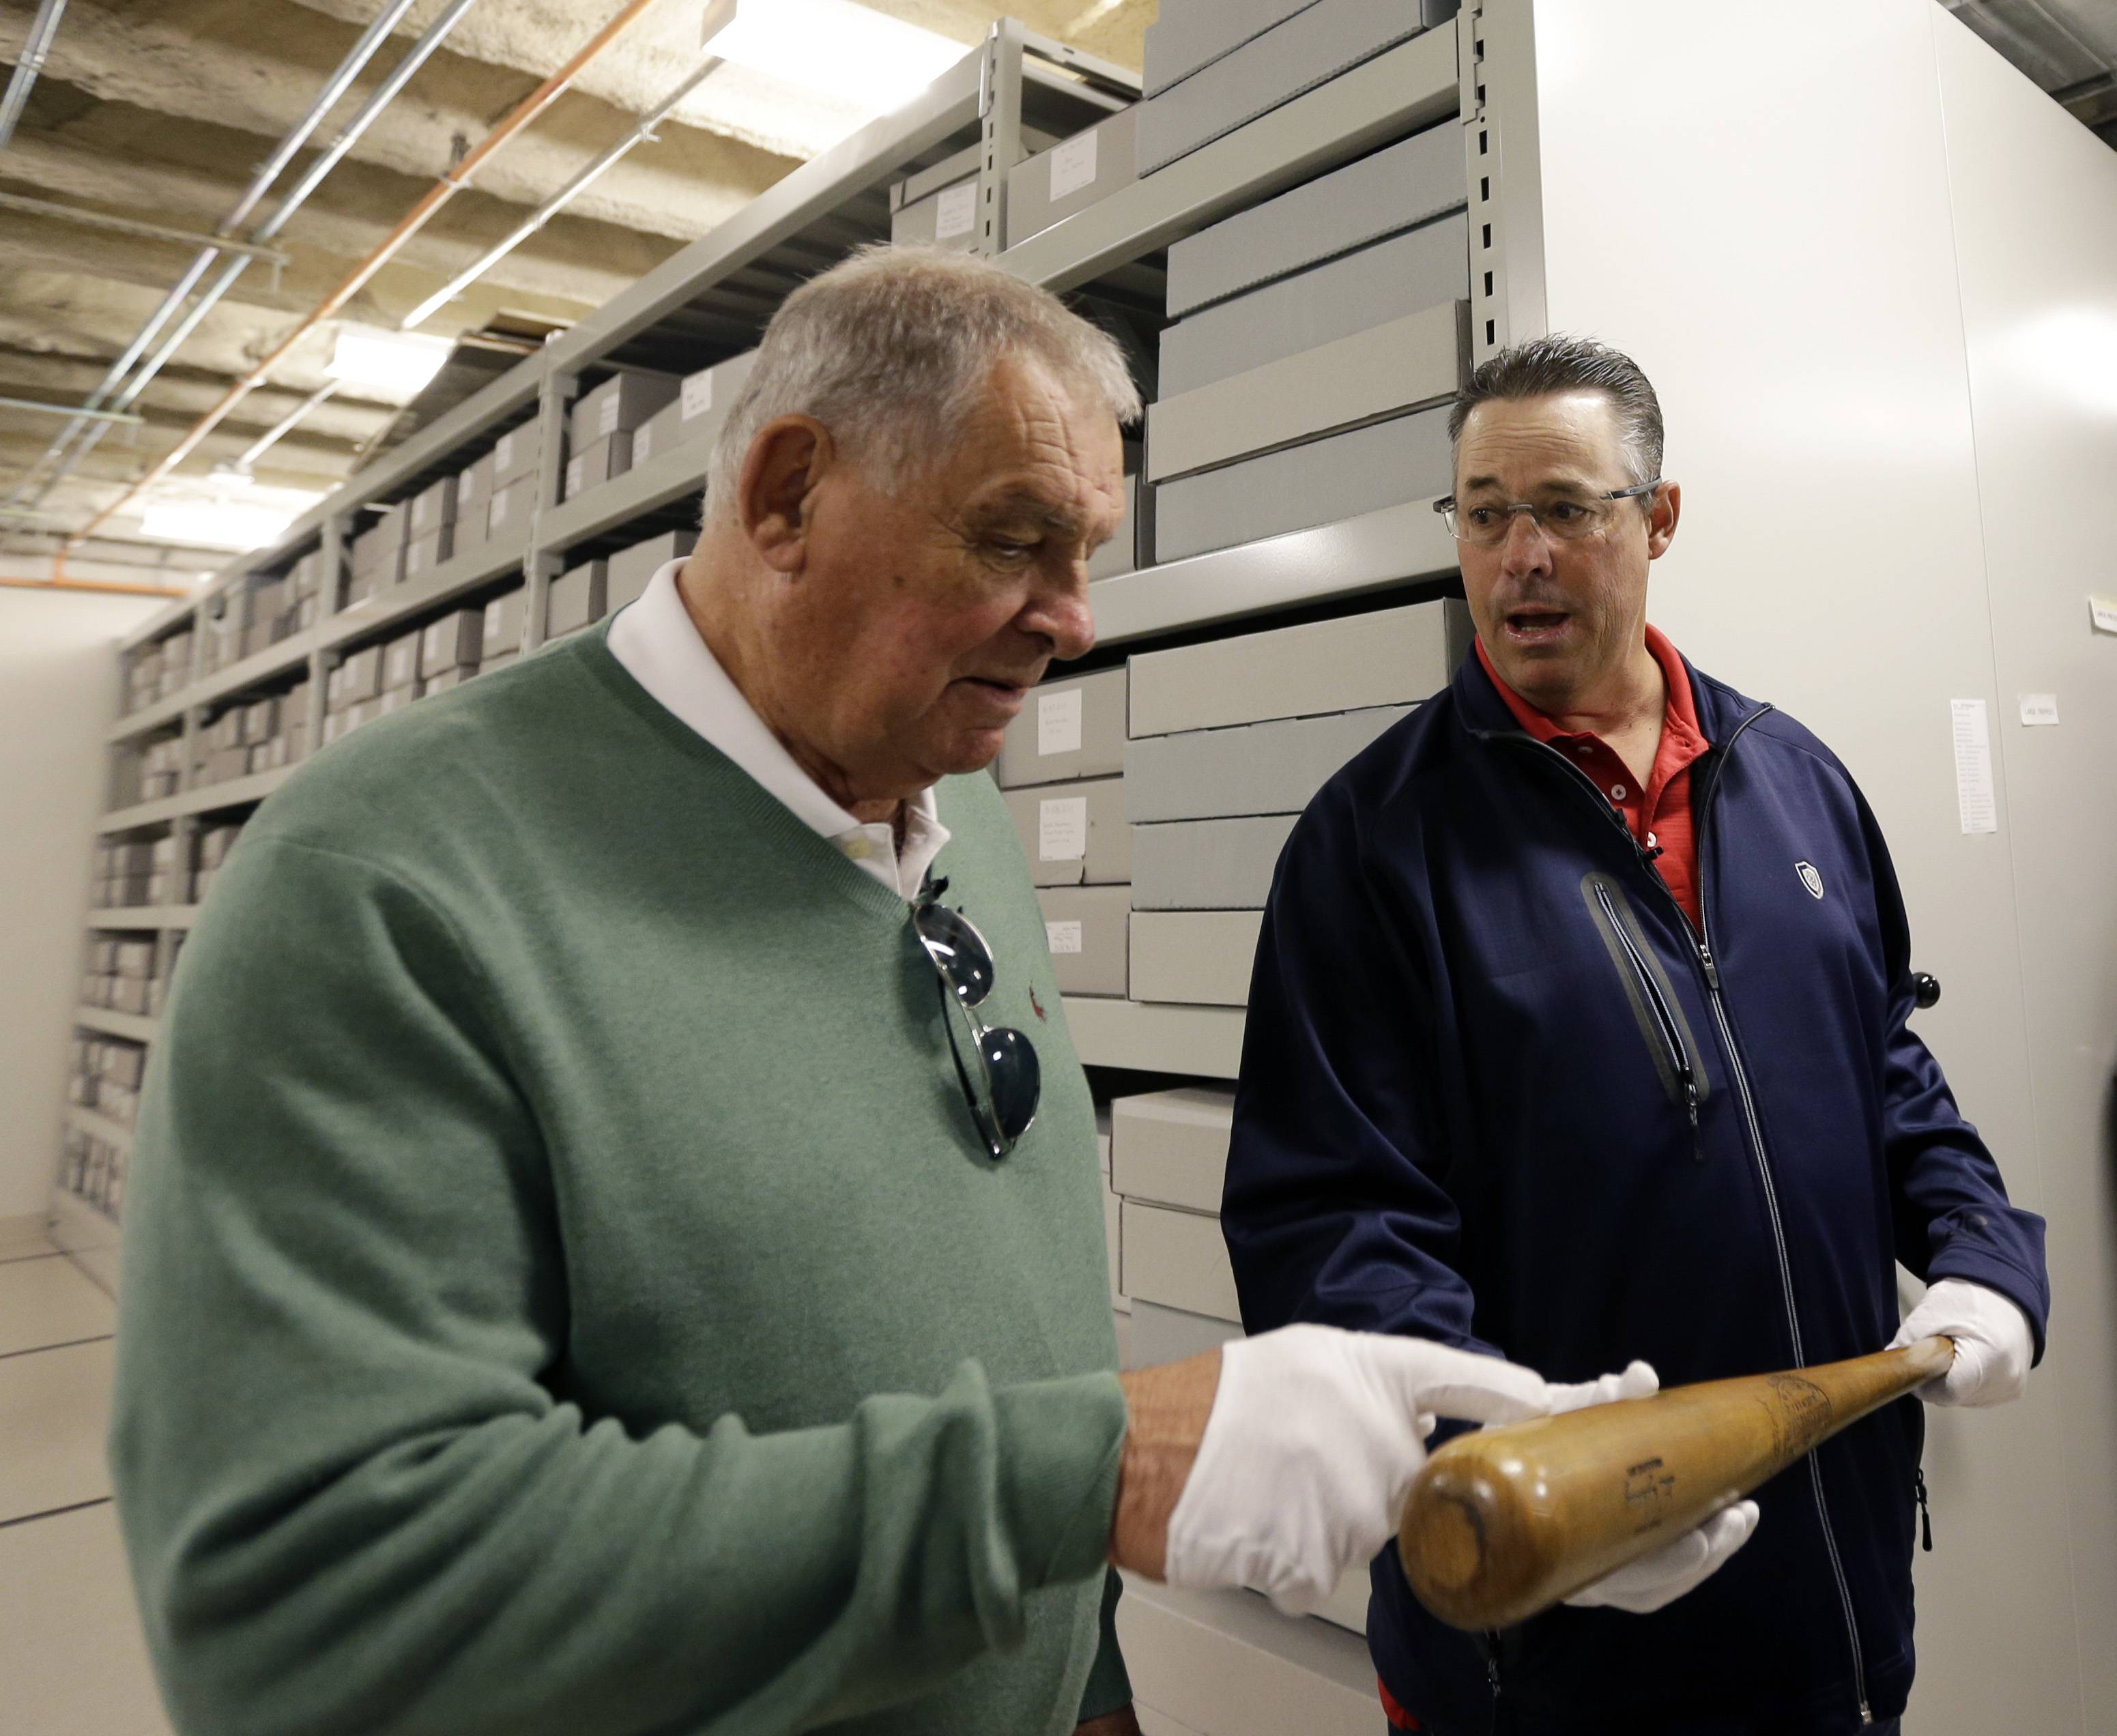 Former Atlanta Braves manager Bobby Cox, left, and former pitcher Greg Maddux hold a Lou Gehrig bat during their orientation visit at the Baseball Hall of Fame on Monday, March 24, 2014, in Cooperstown, N.Y. They will be inducted to the hall in July.